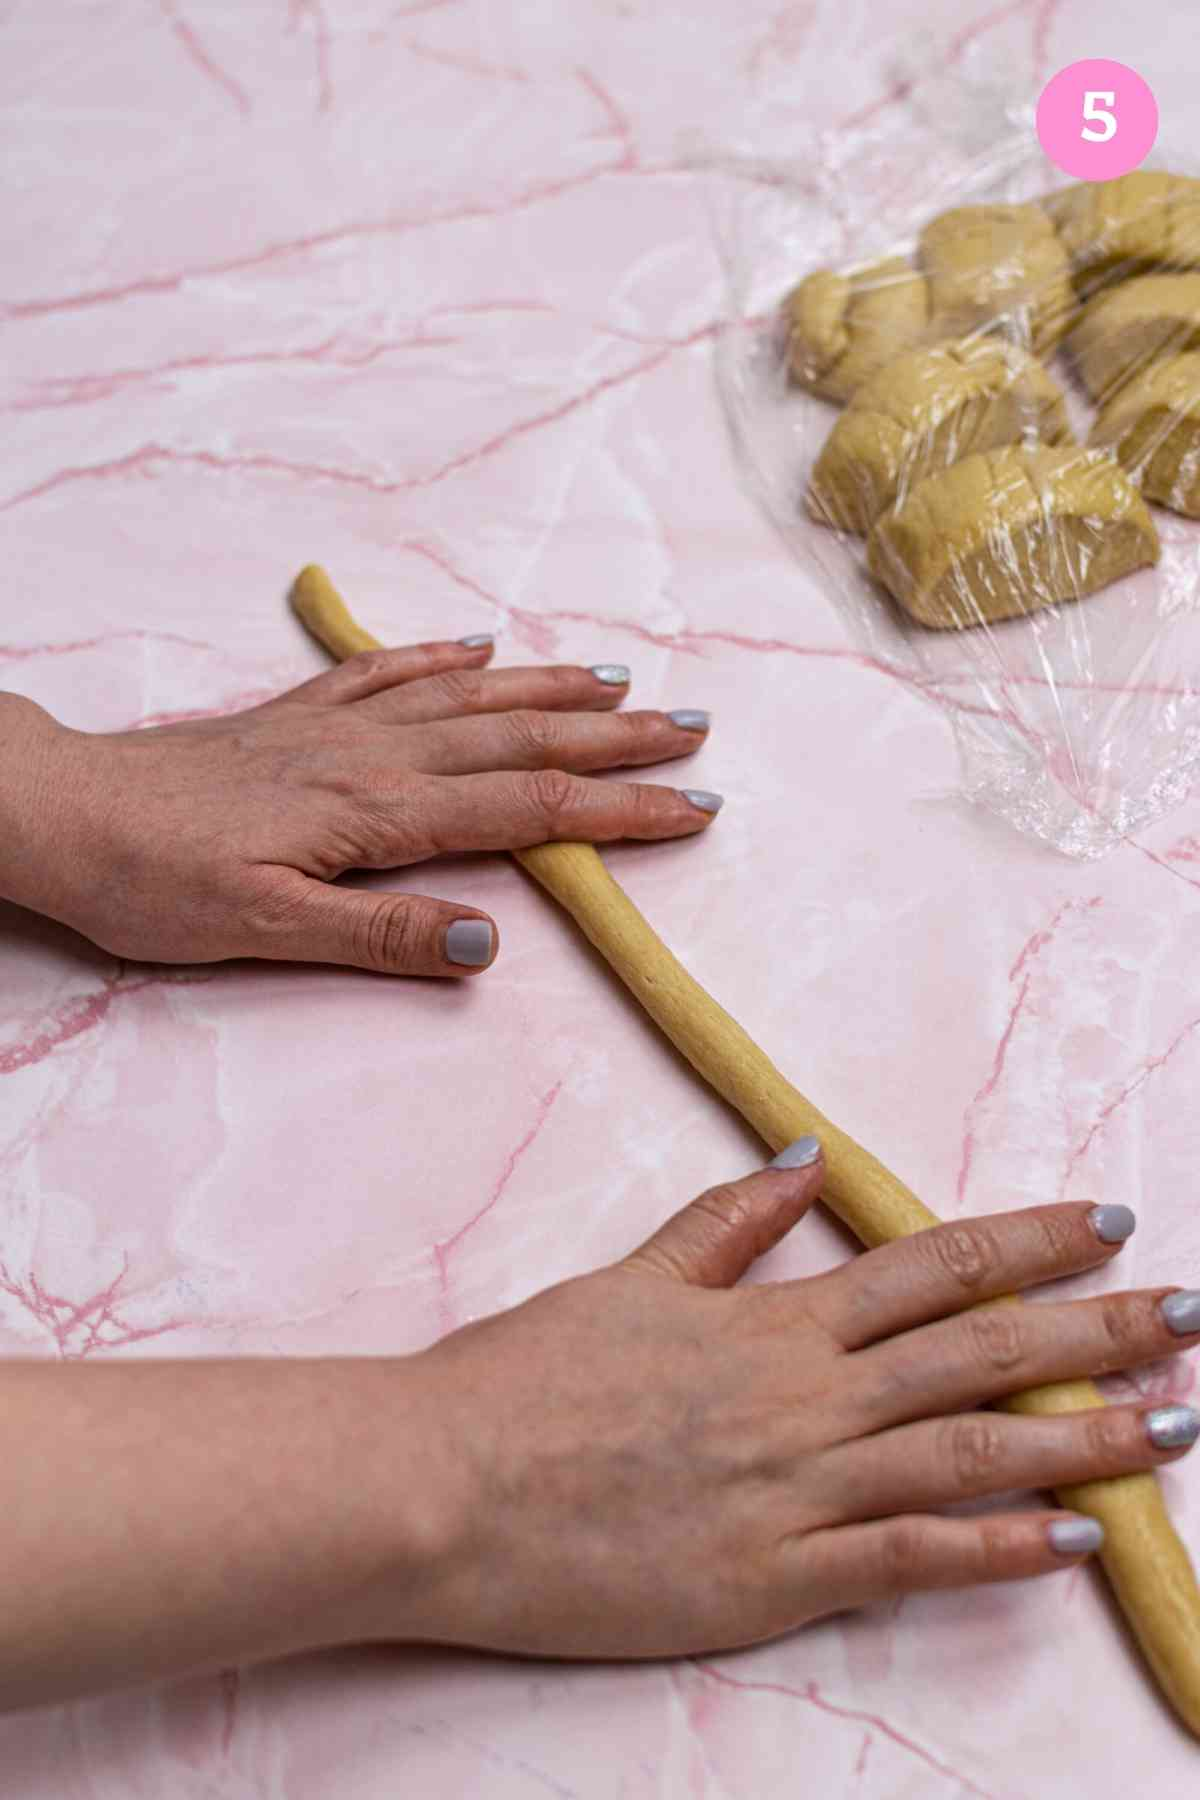 Hands rolling out dough into thin strip